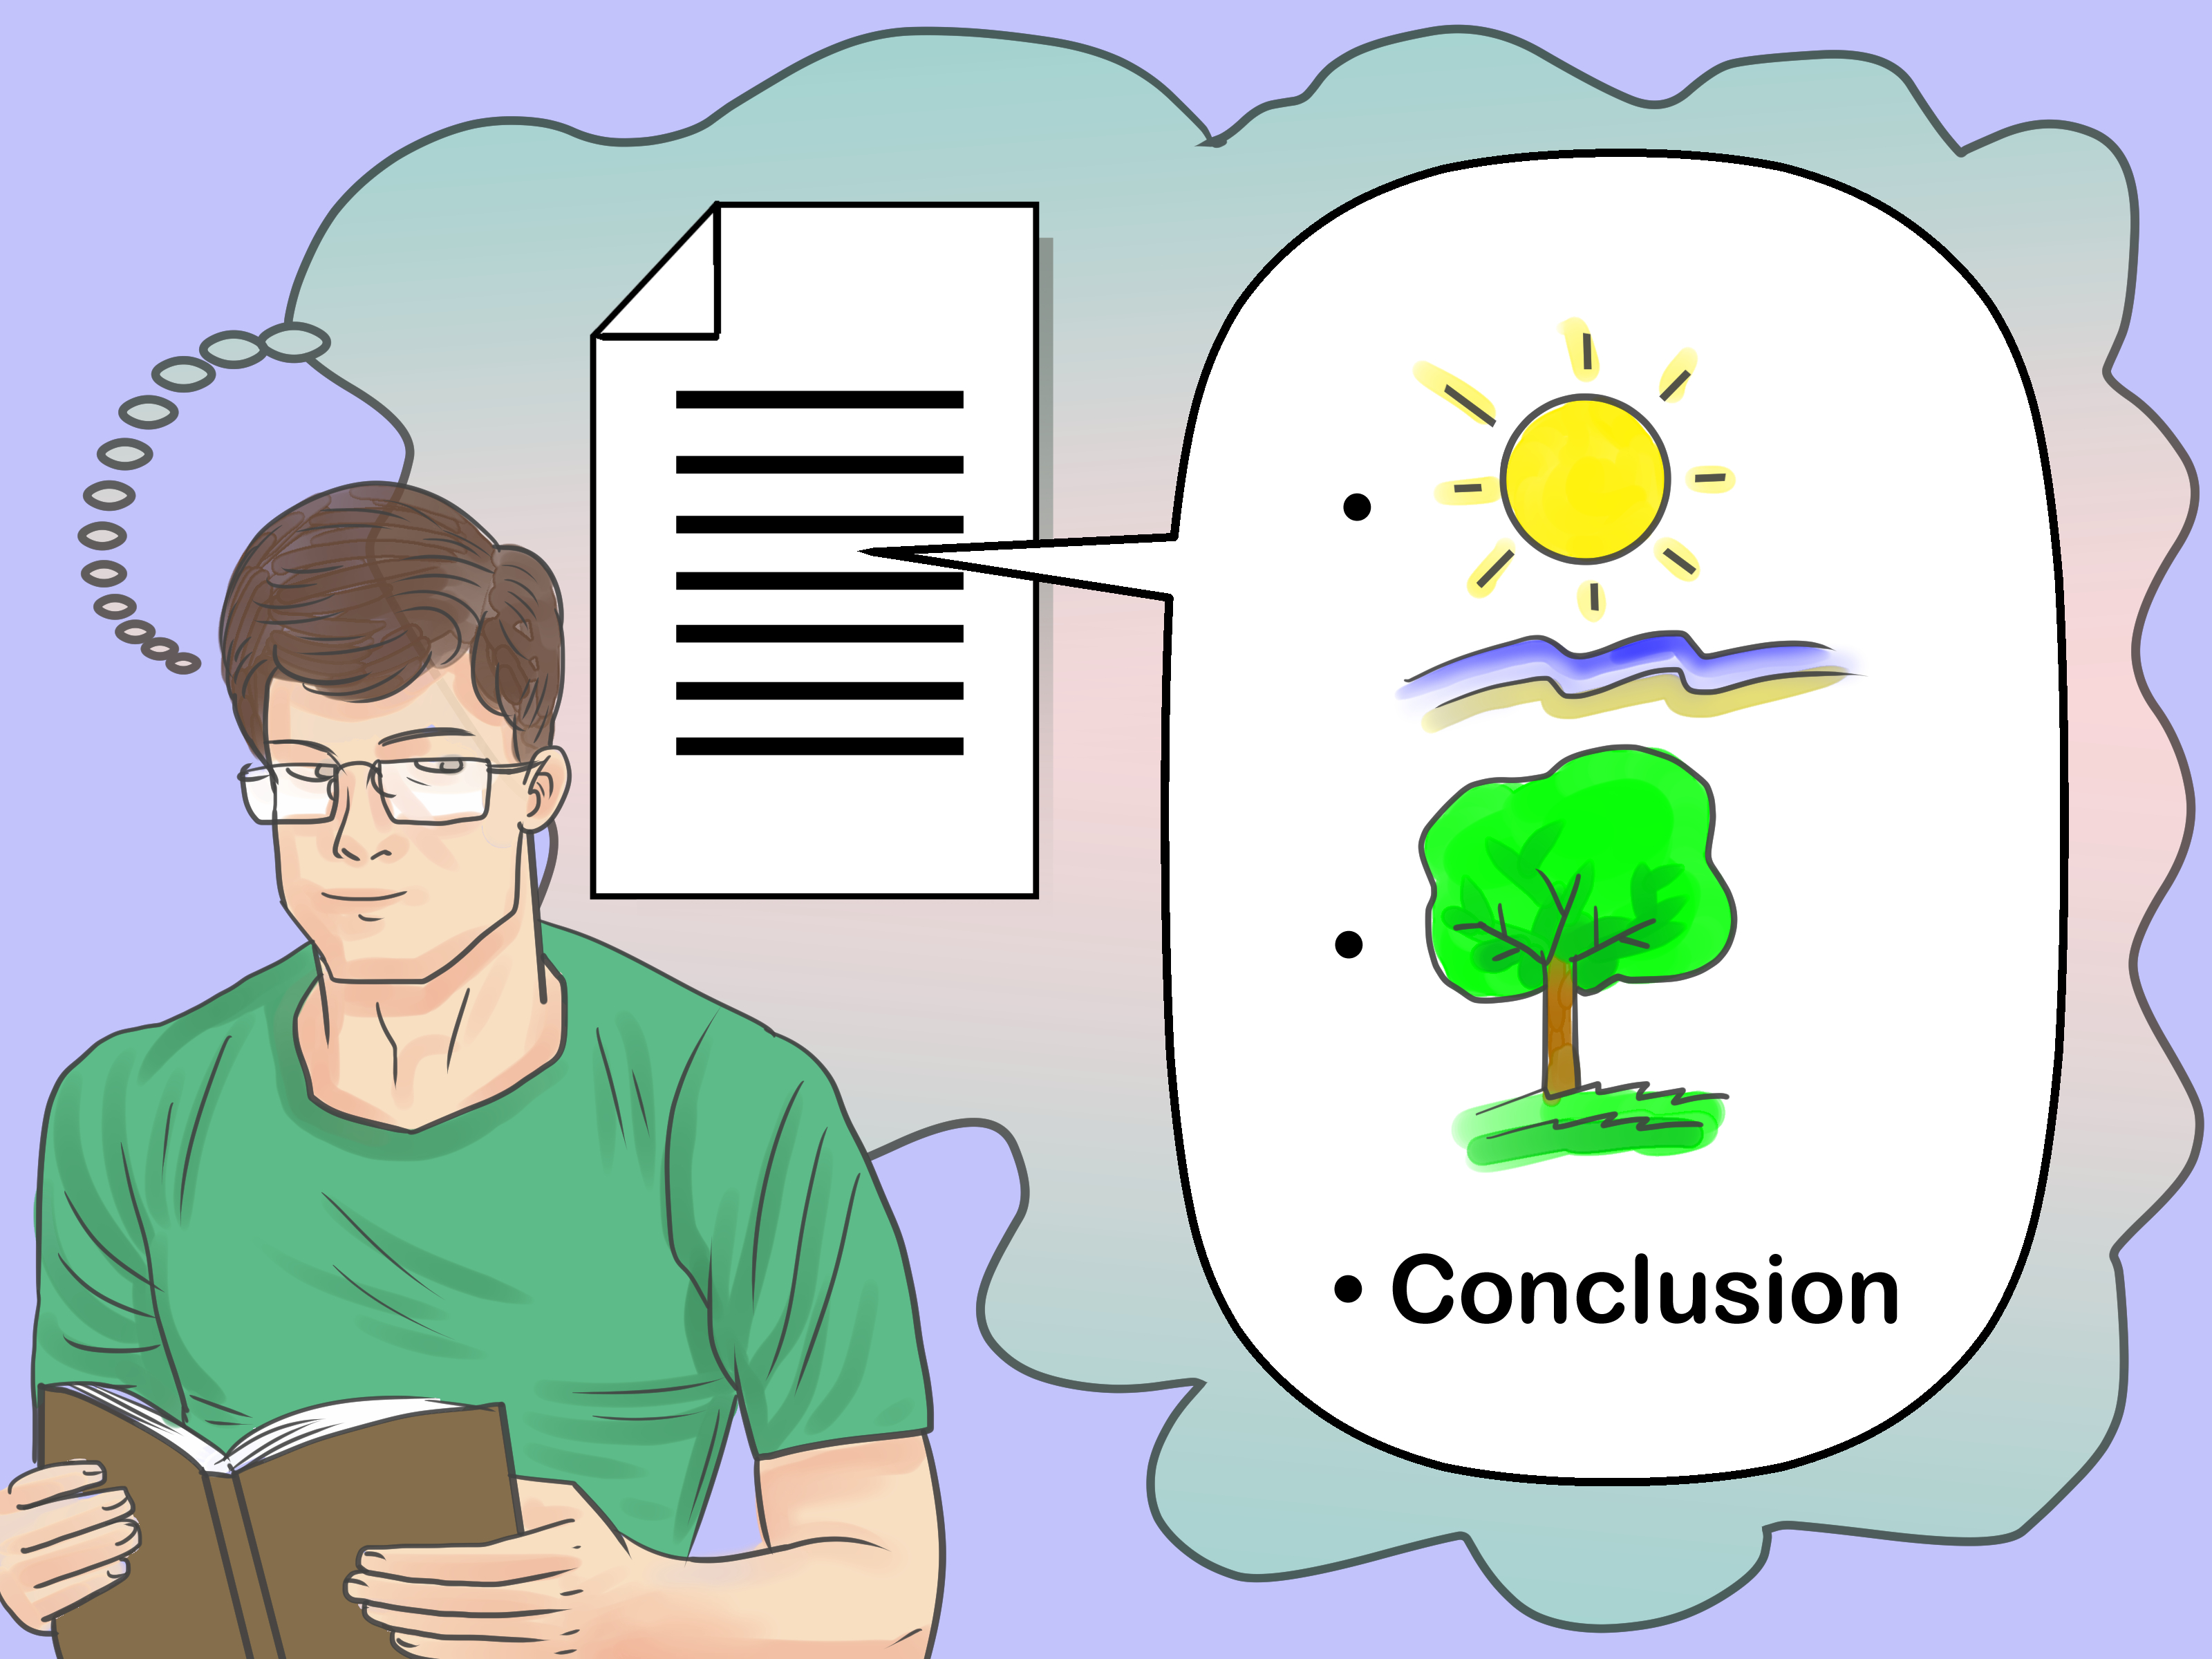 018 Write Compare And Contrast Essay Step Version Example Stupendous Structure Ppt Format Outline Full